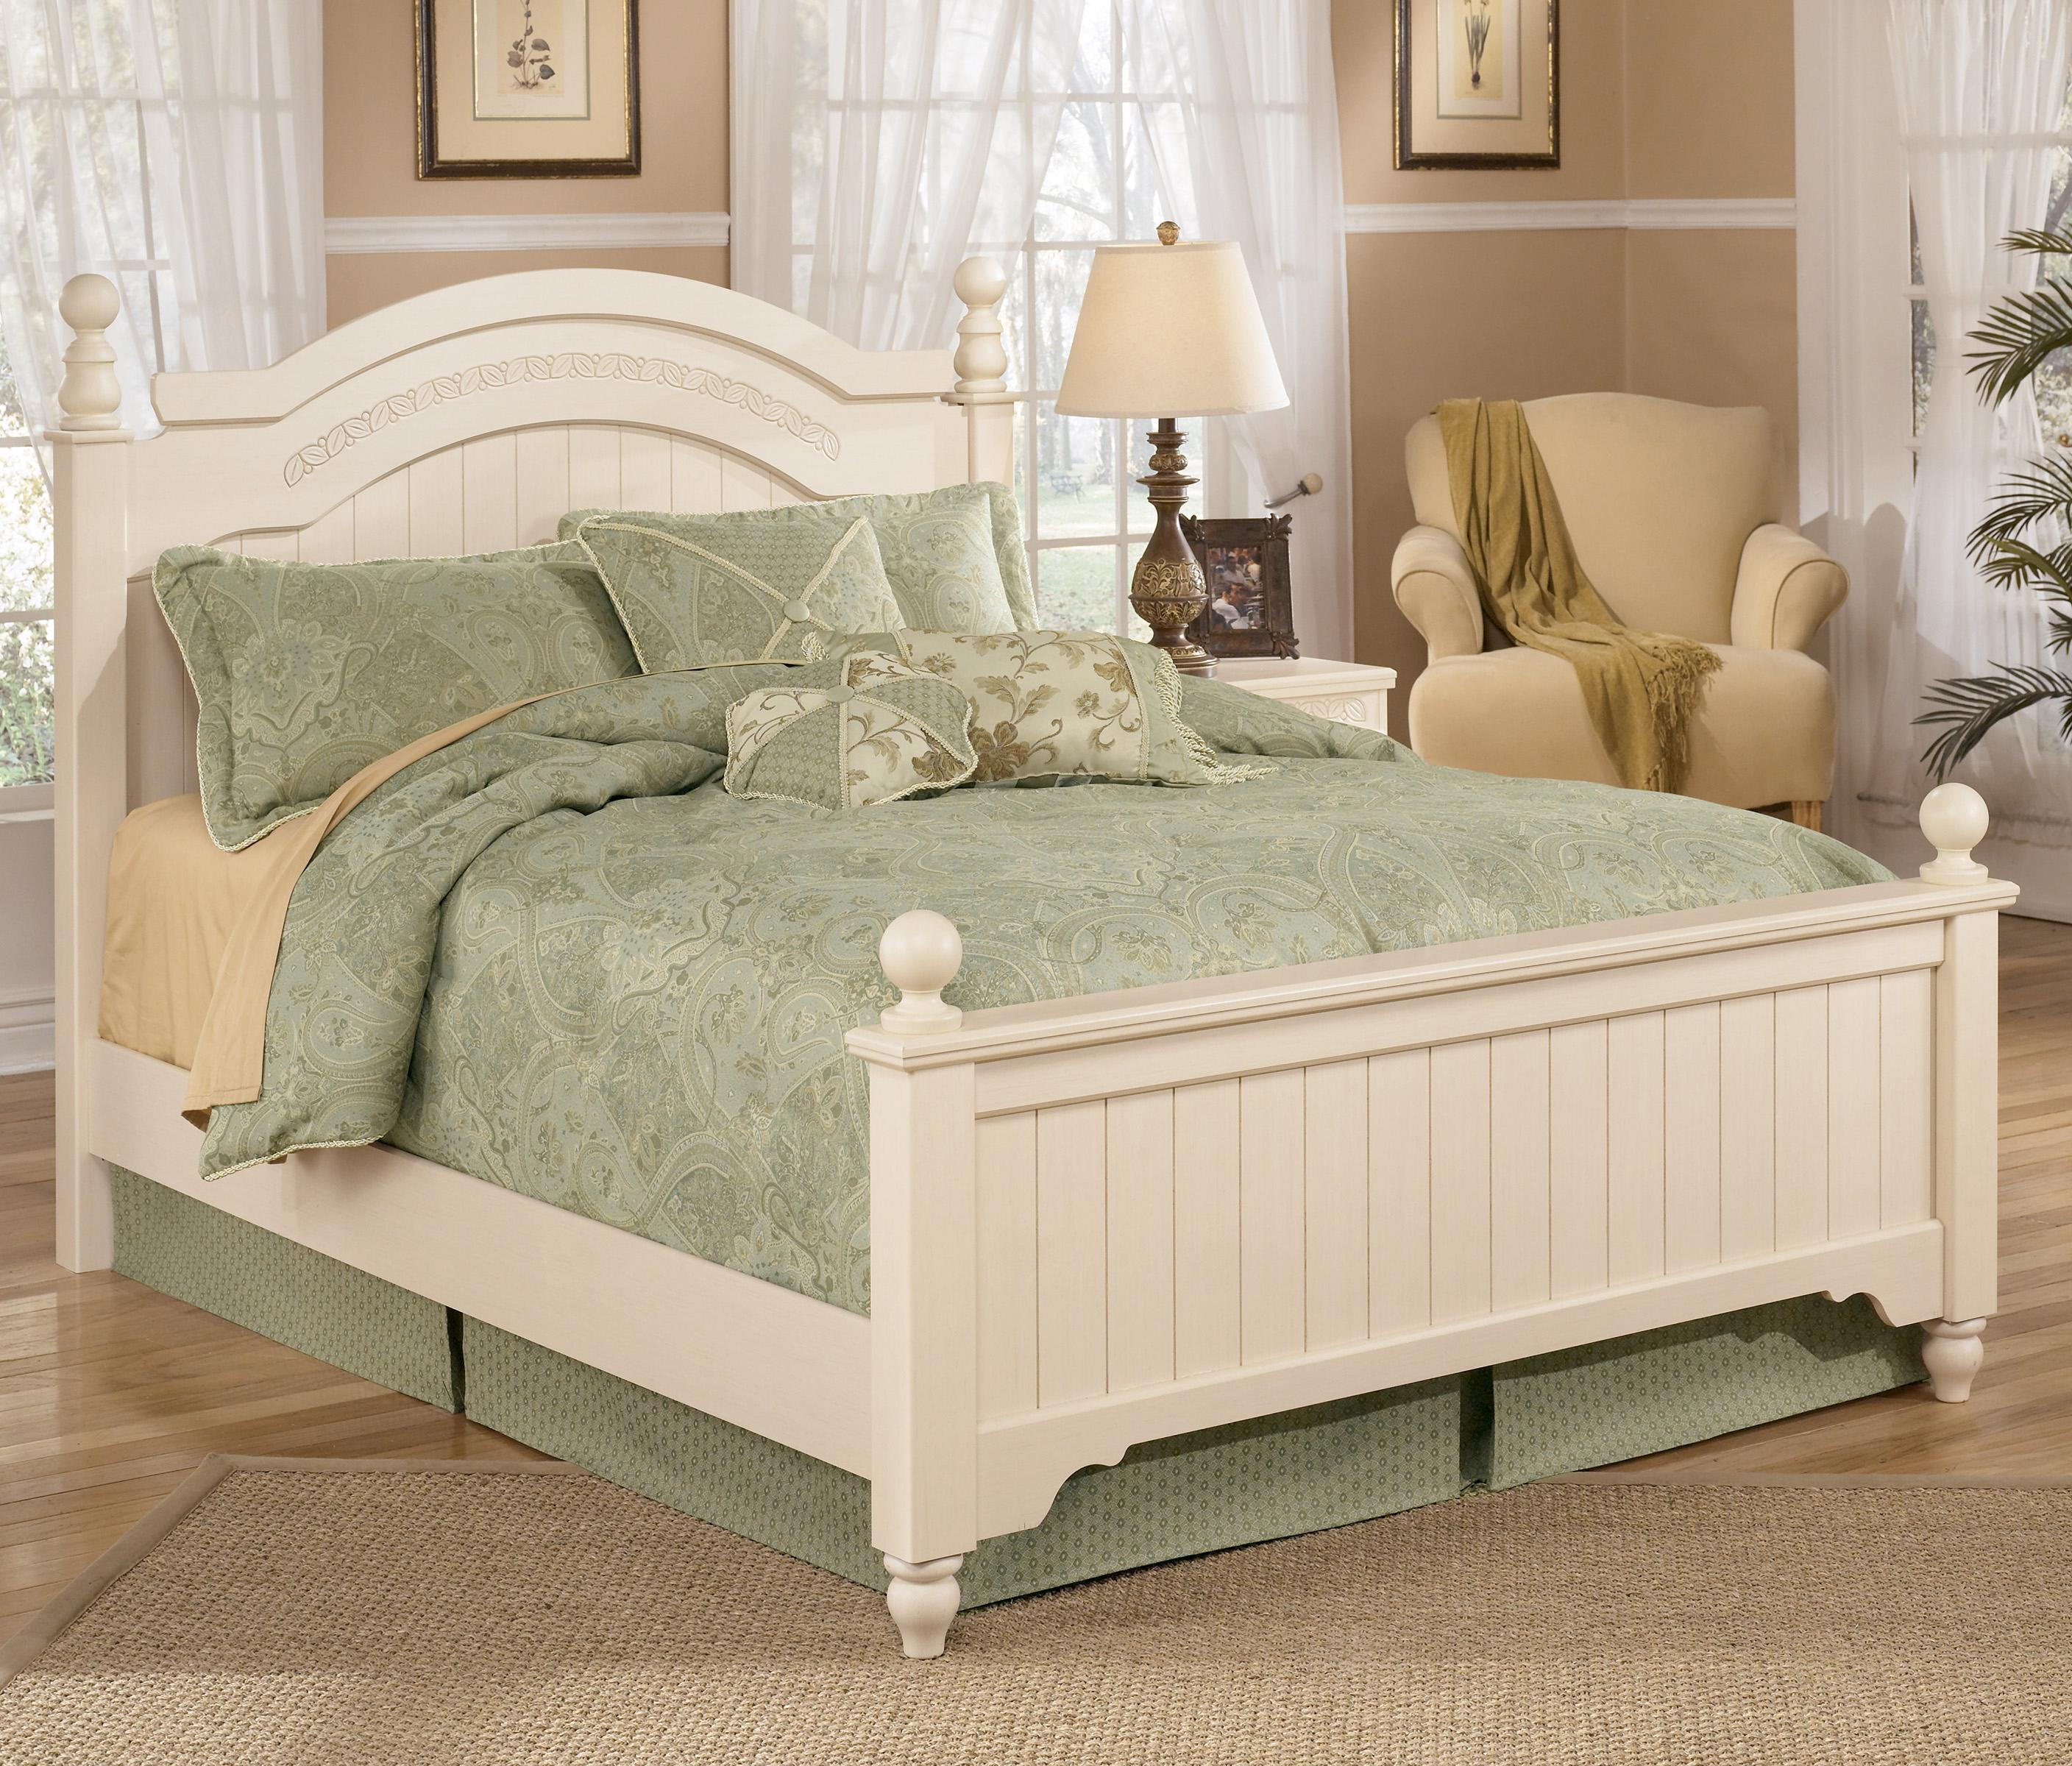 Signature Design by Ashley Cottage Retreat Full Poster Bed - Item Number: B213-57N+54N+89N